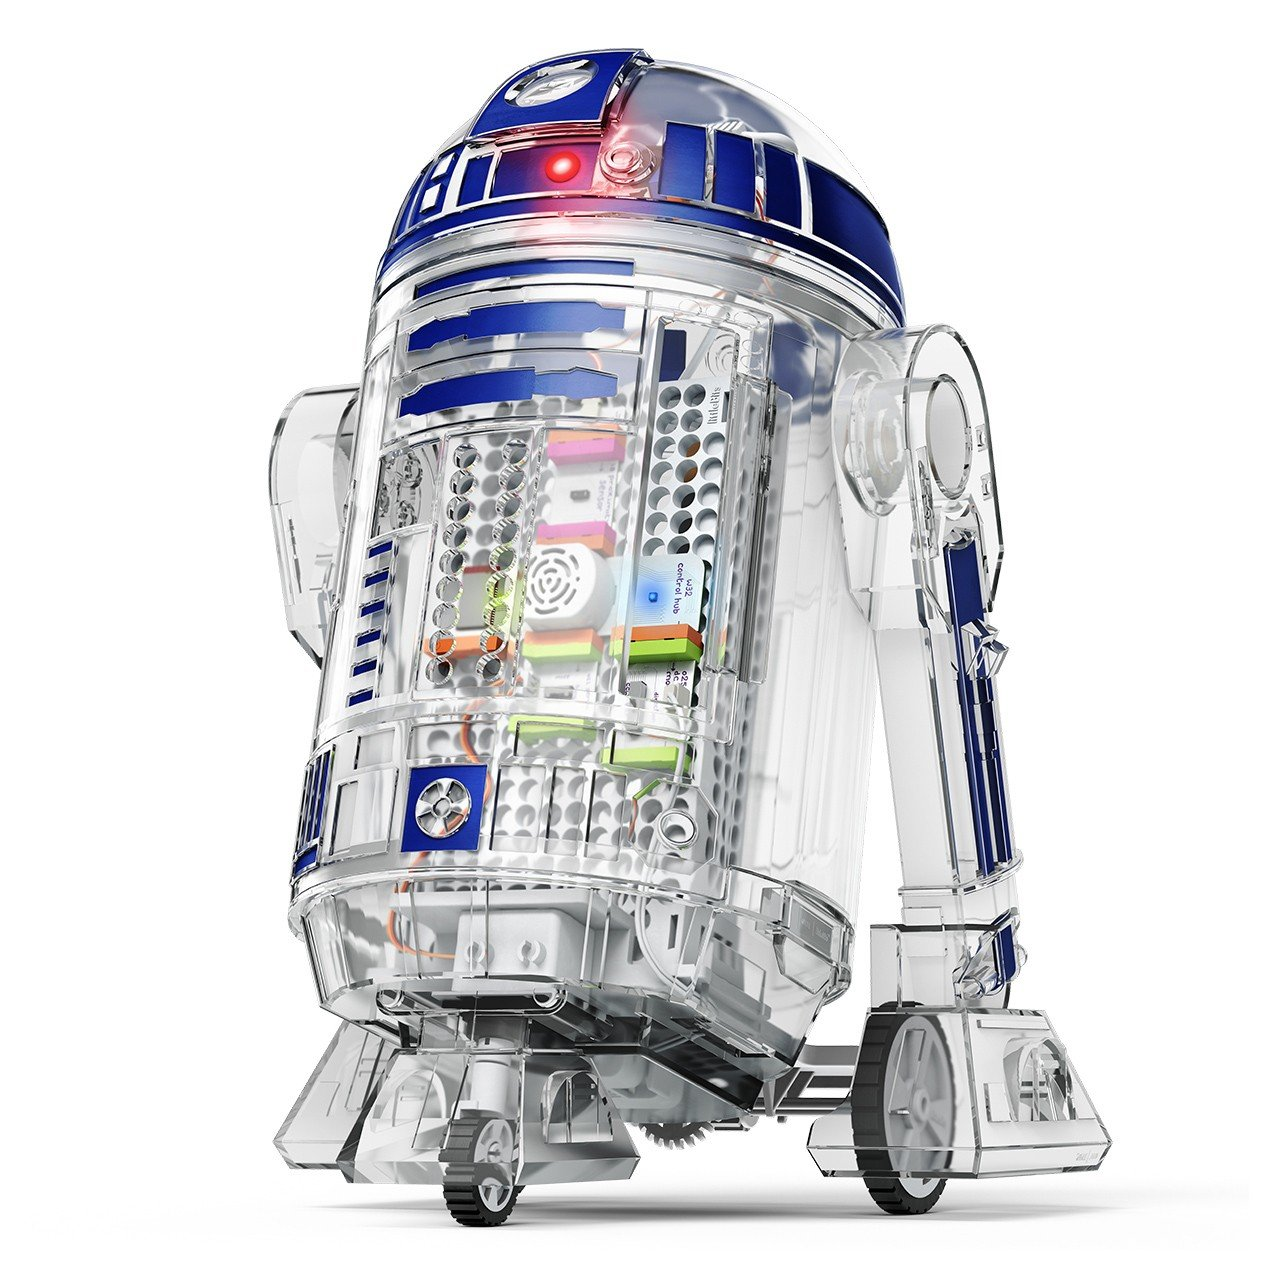 Littlebits Star Wars Droid Inventor Kit Lb-680-0011-eu